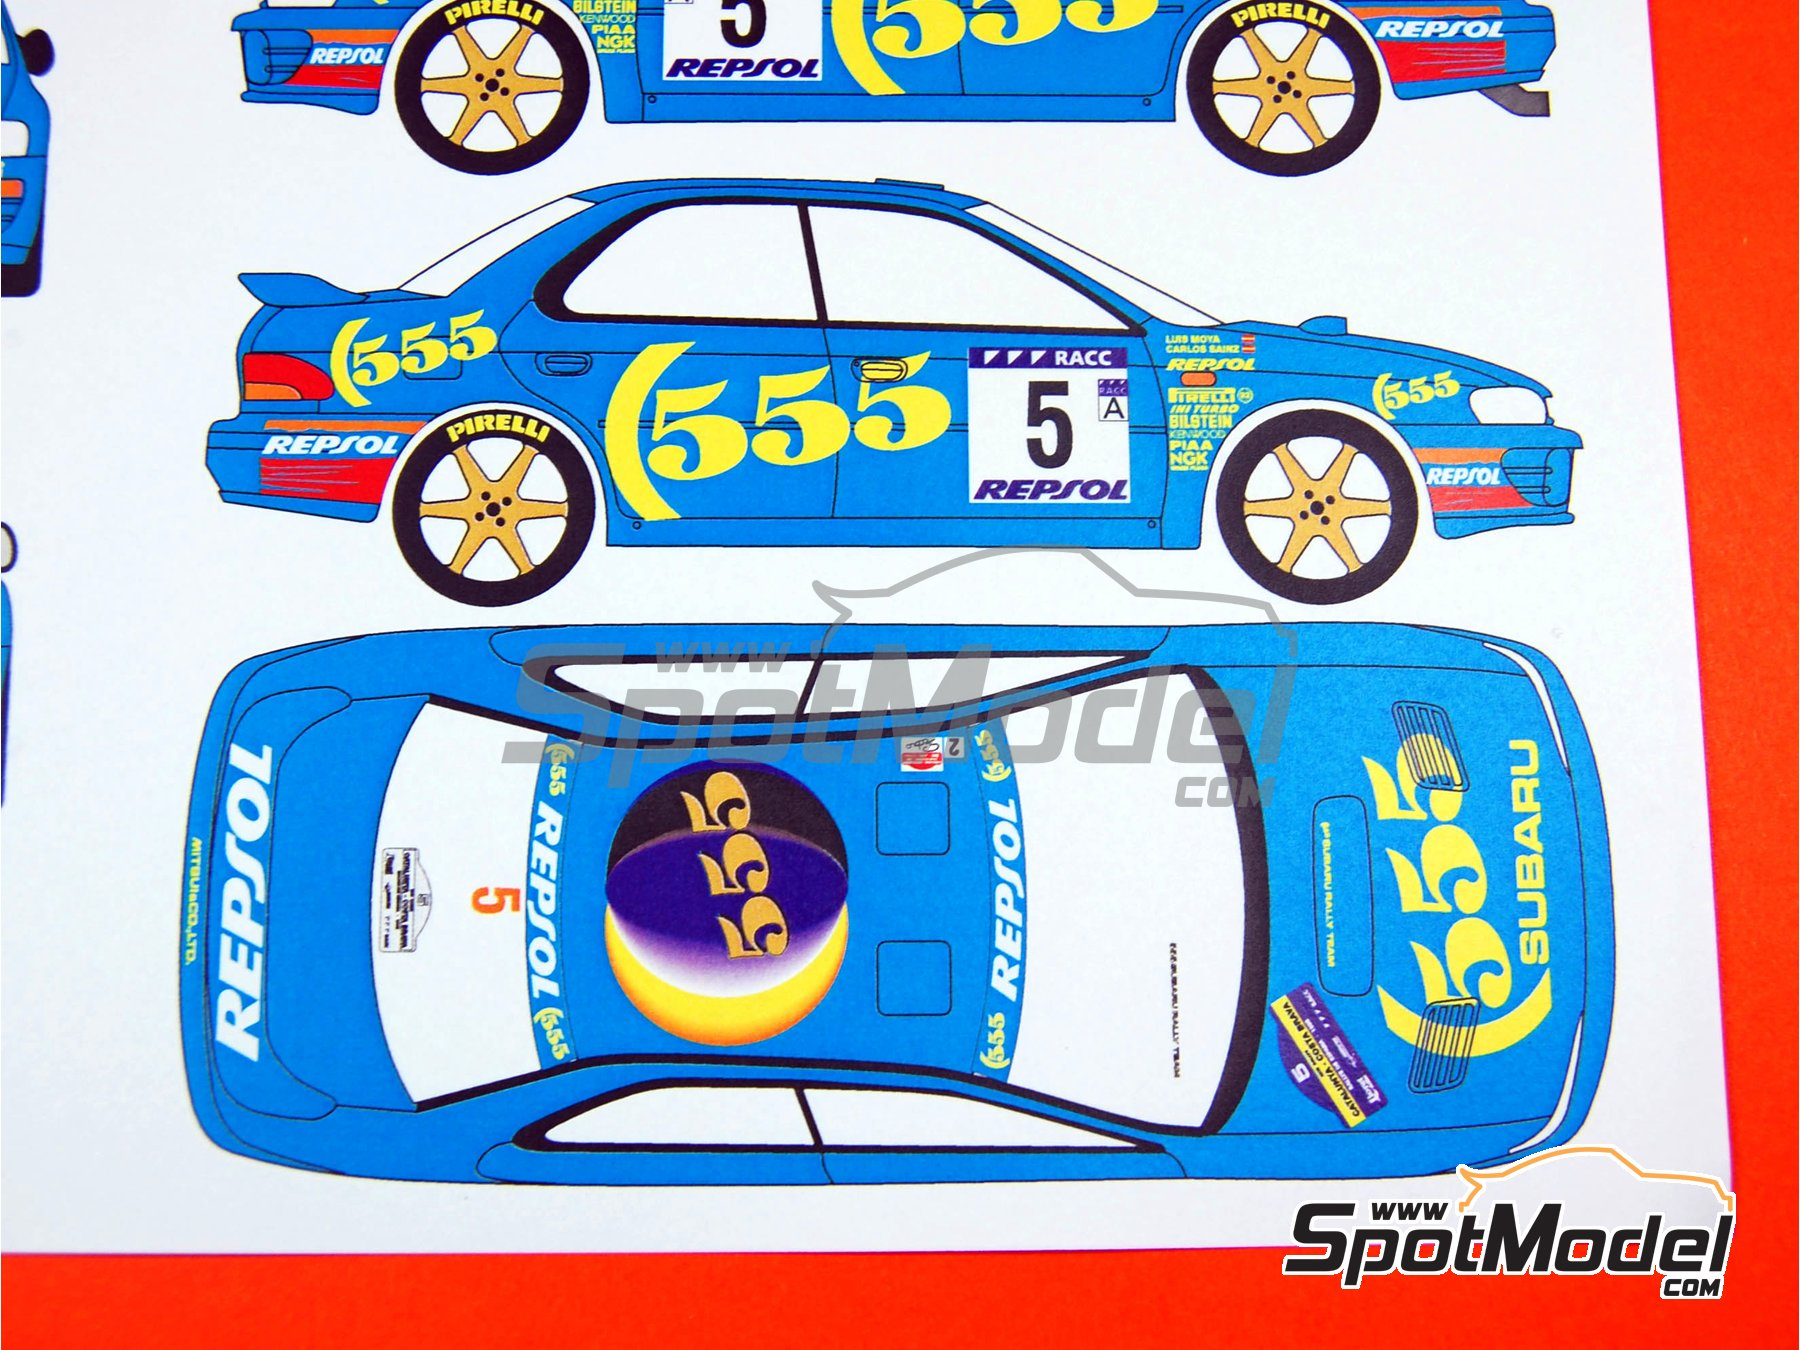 Image 6: Subaru Impreza 555 Group A Repsol - Catalunya Costa Dorada RACC Rally, Great Britain RAC Rally 1995 | Marking / livery in 1/24 scale manufactured by Renaissance Models (ref. TK24-289)